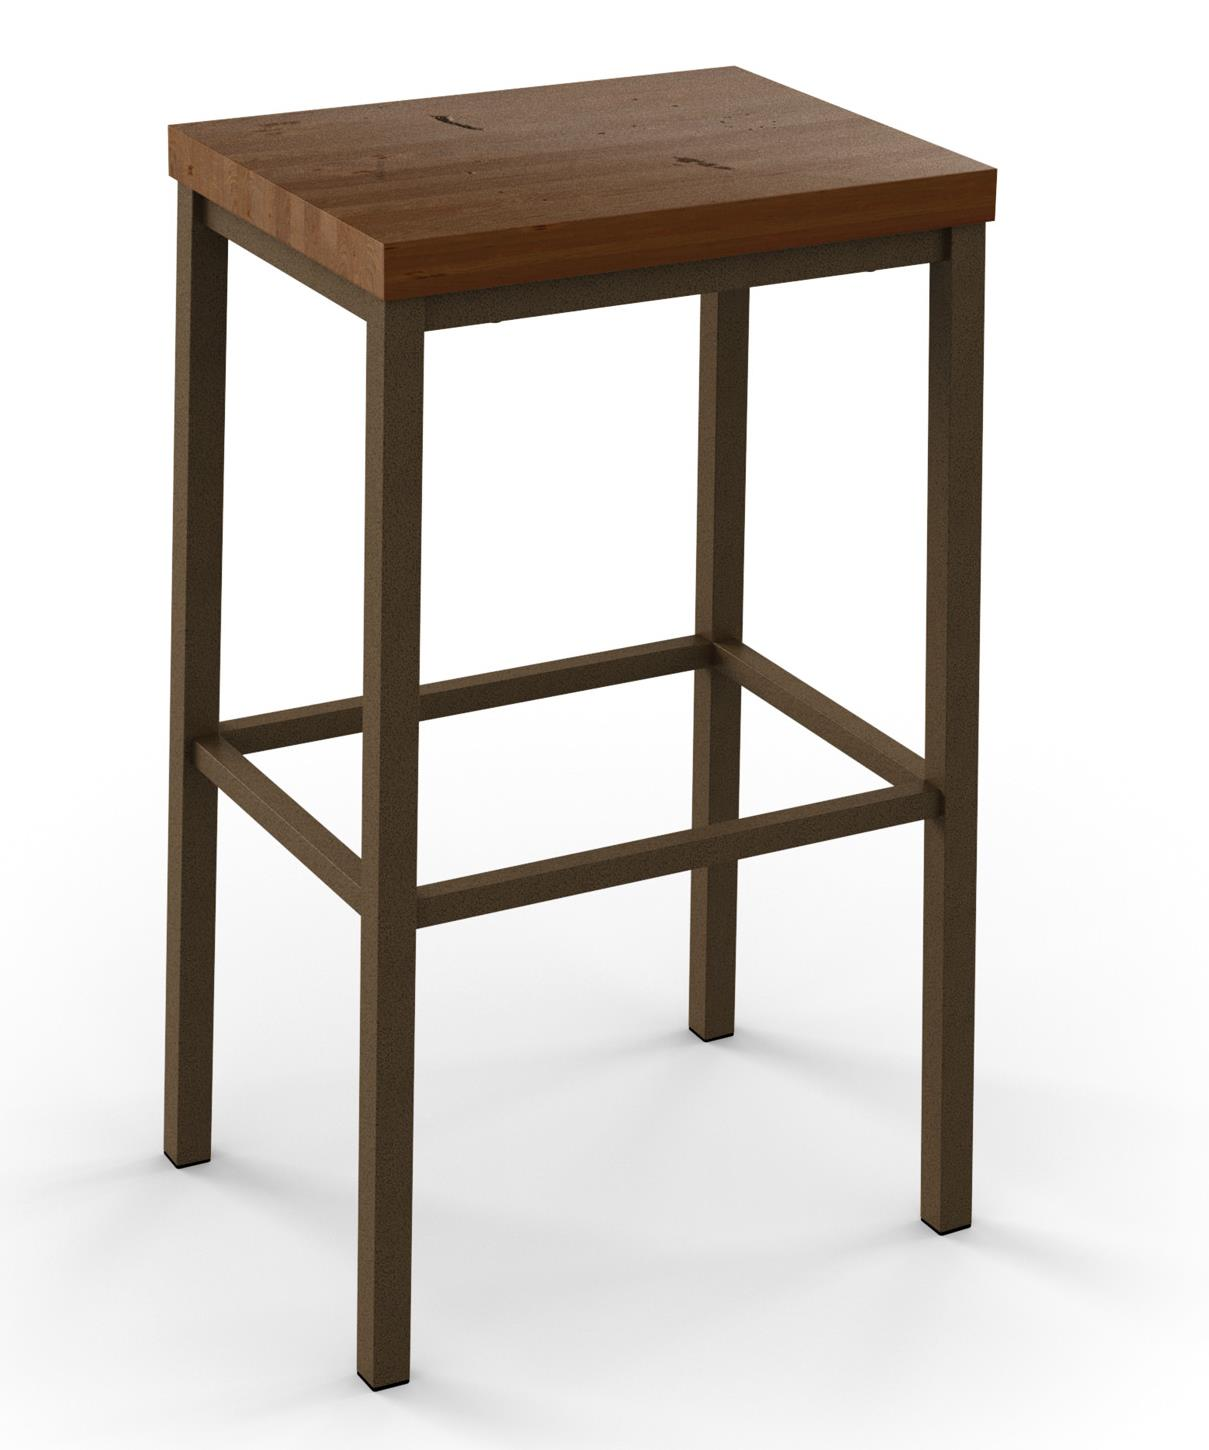 Industrial Bradley Non-Swivel Counter Height Stool by Amisco at Rooms and Rest